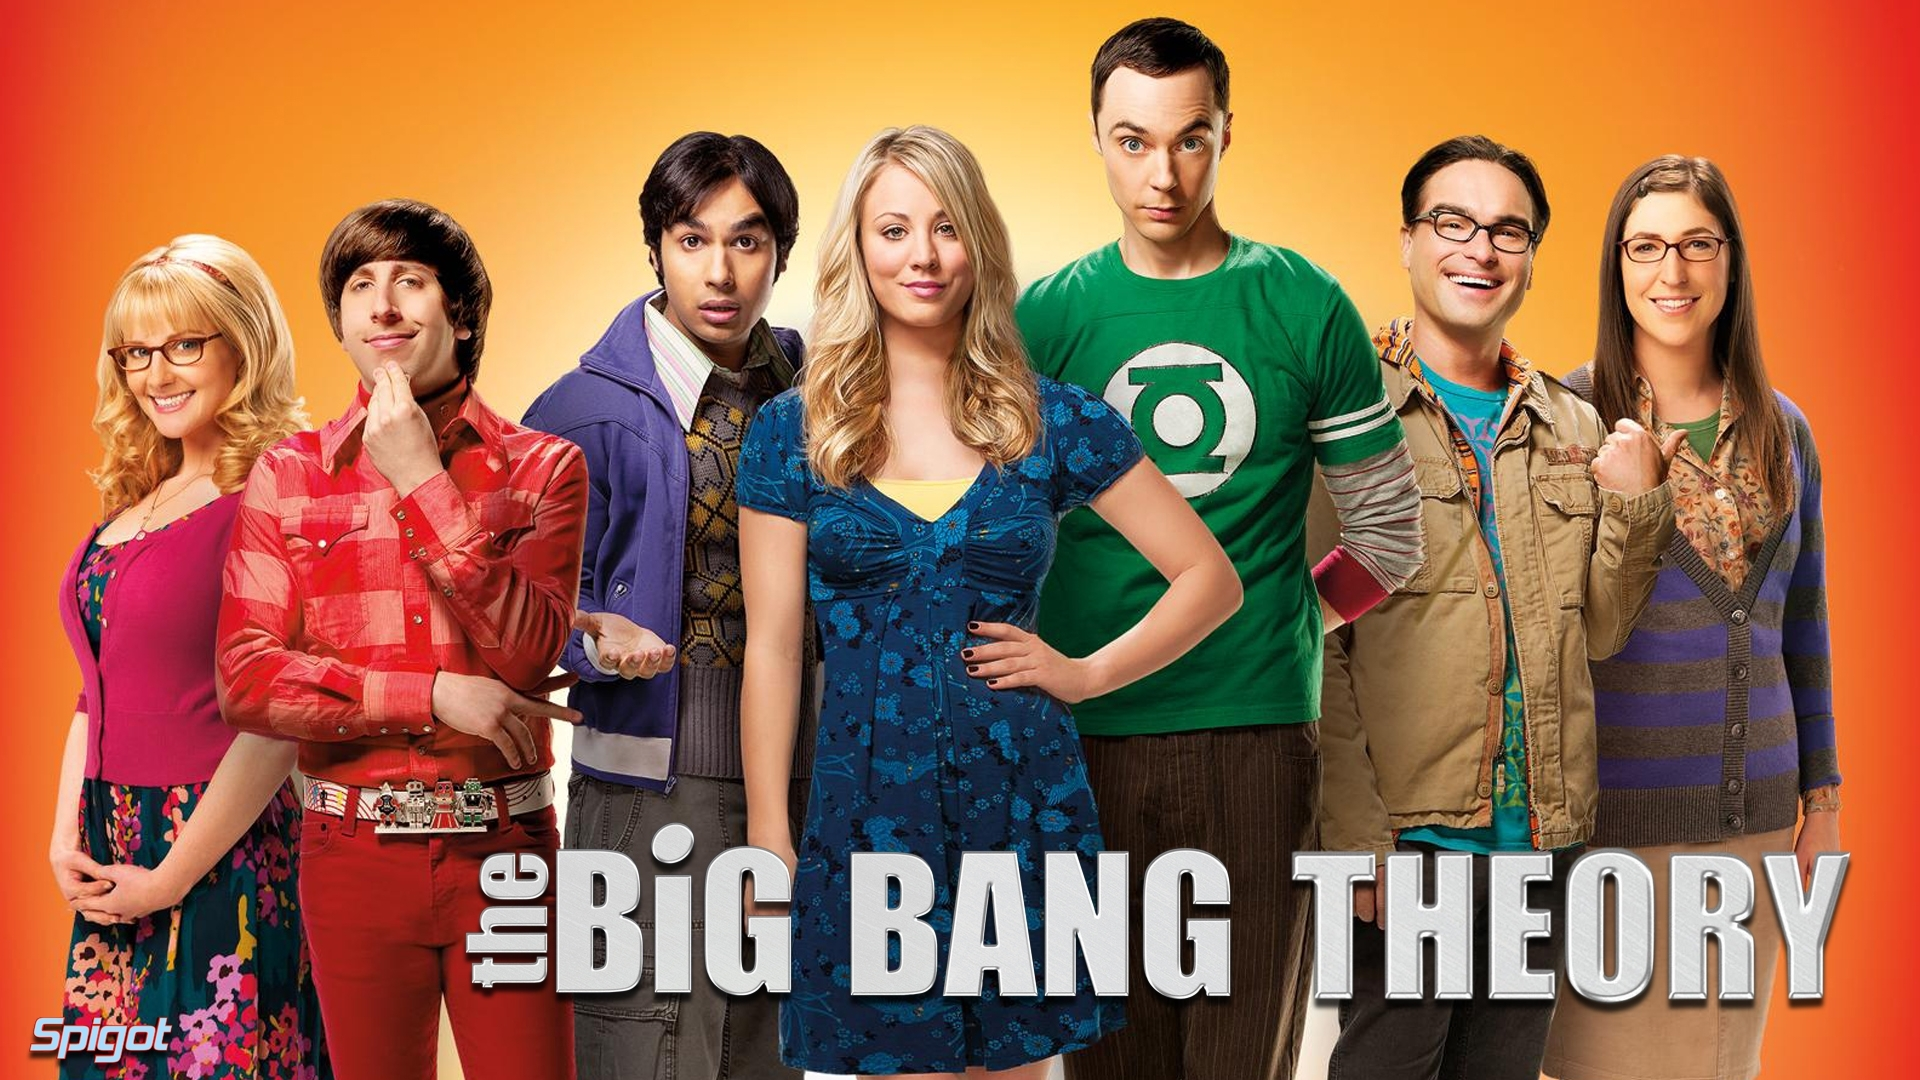 the big bang theory : les fans pourront savourer 2 saisons